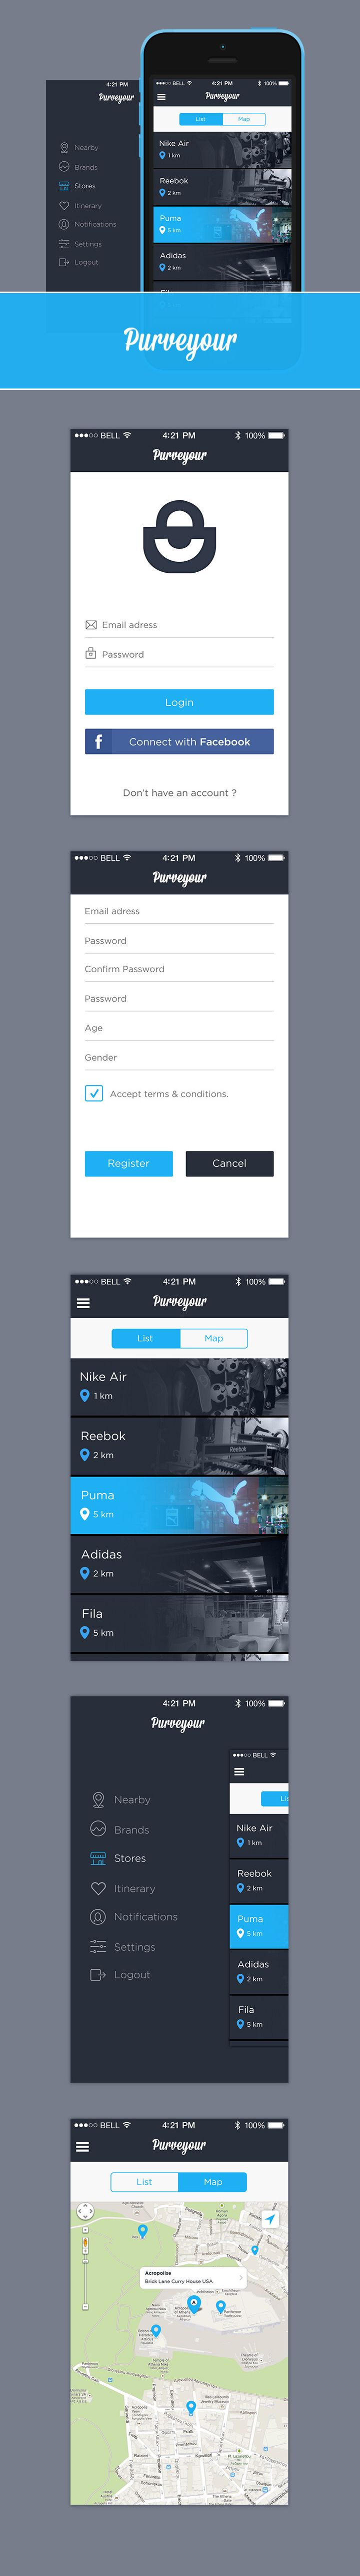 Purveyour Mobile UI